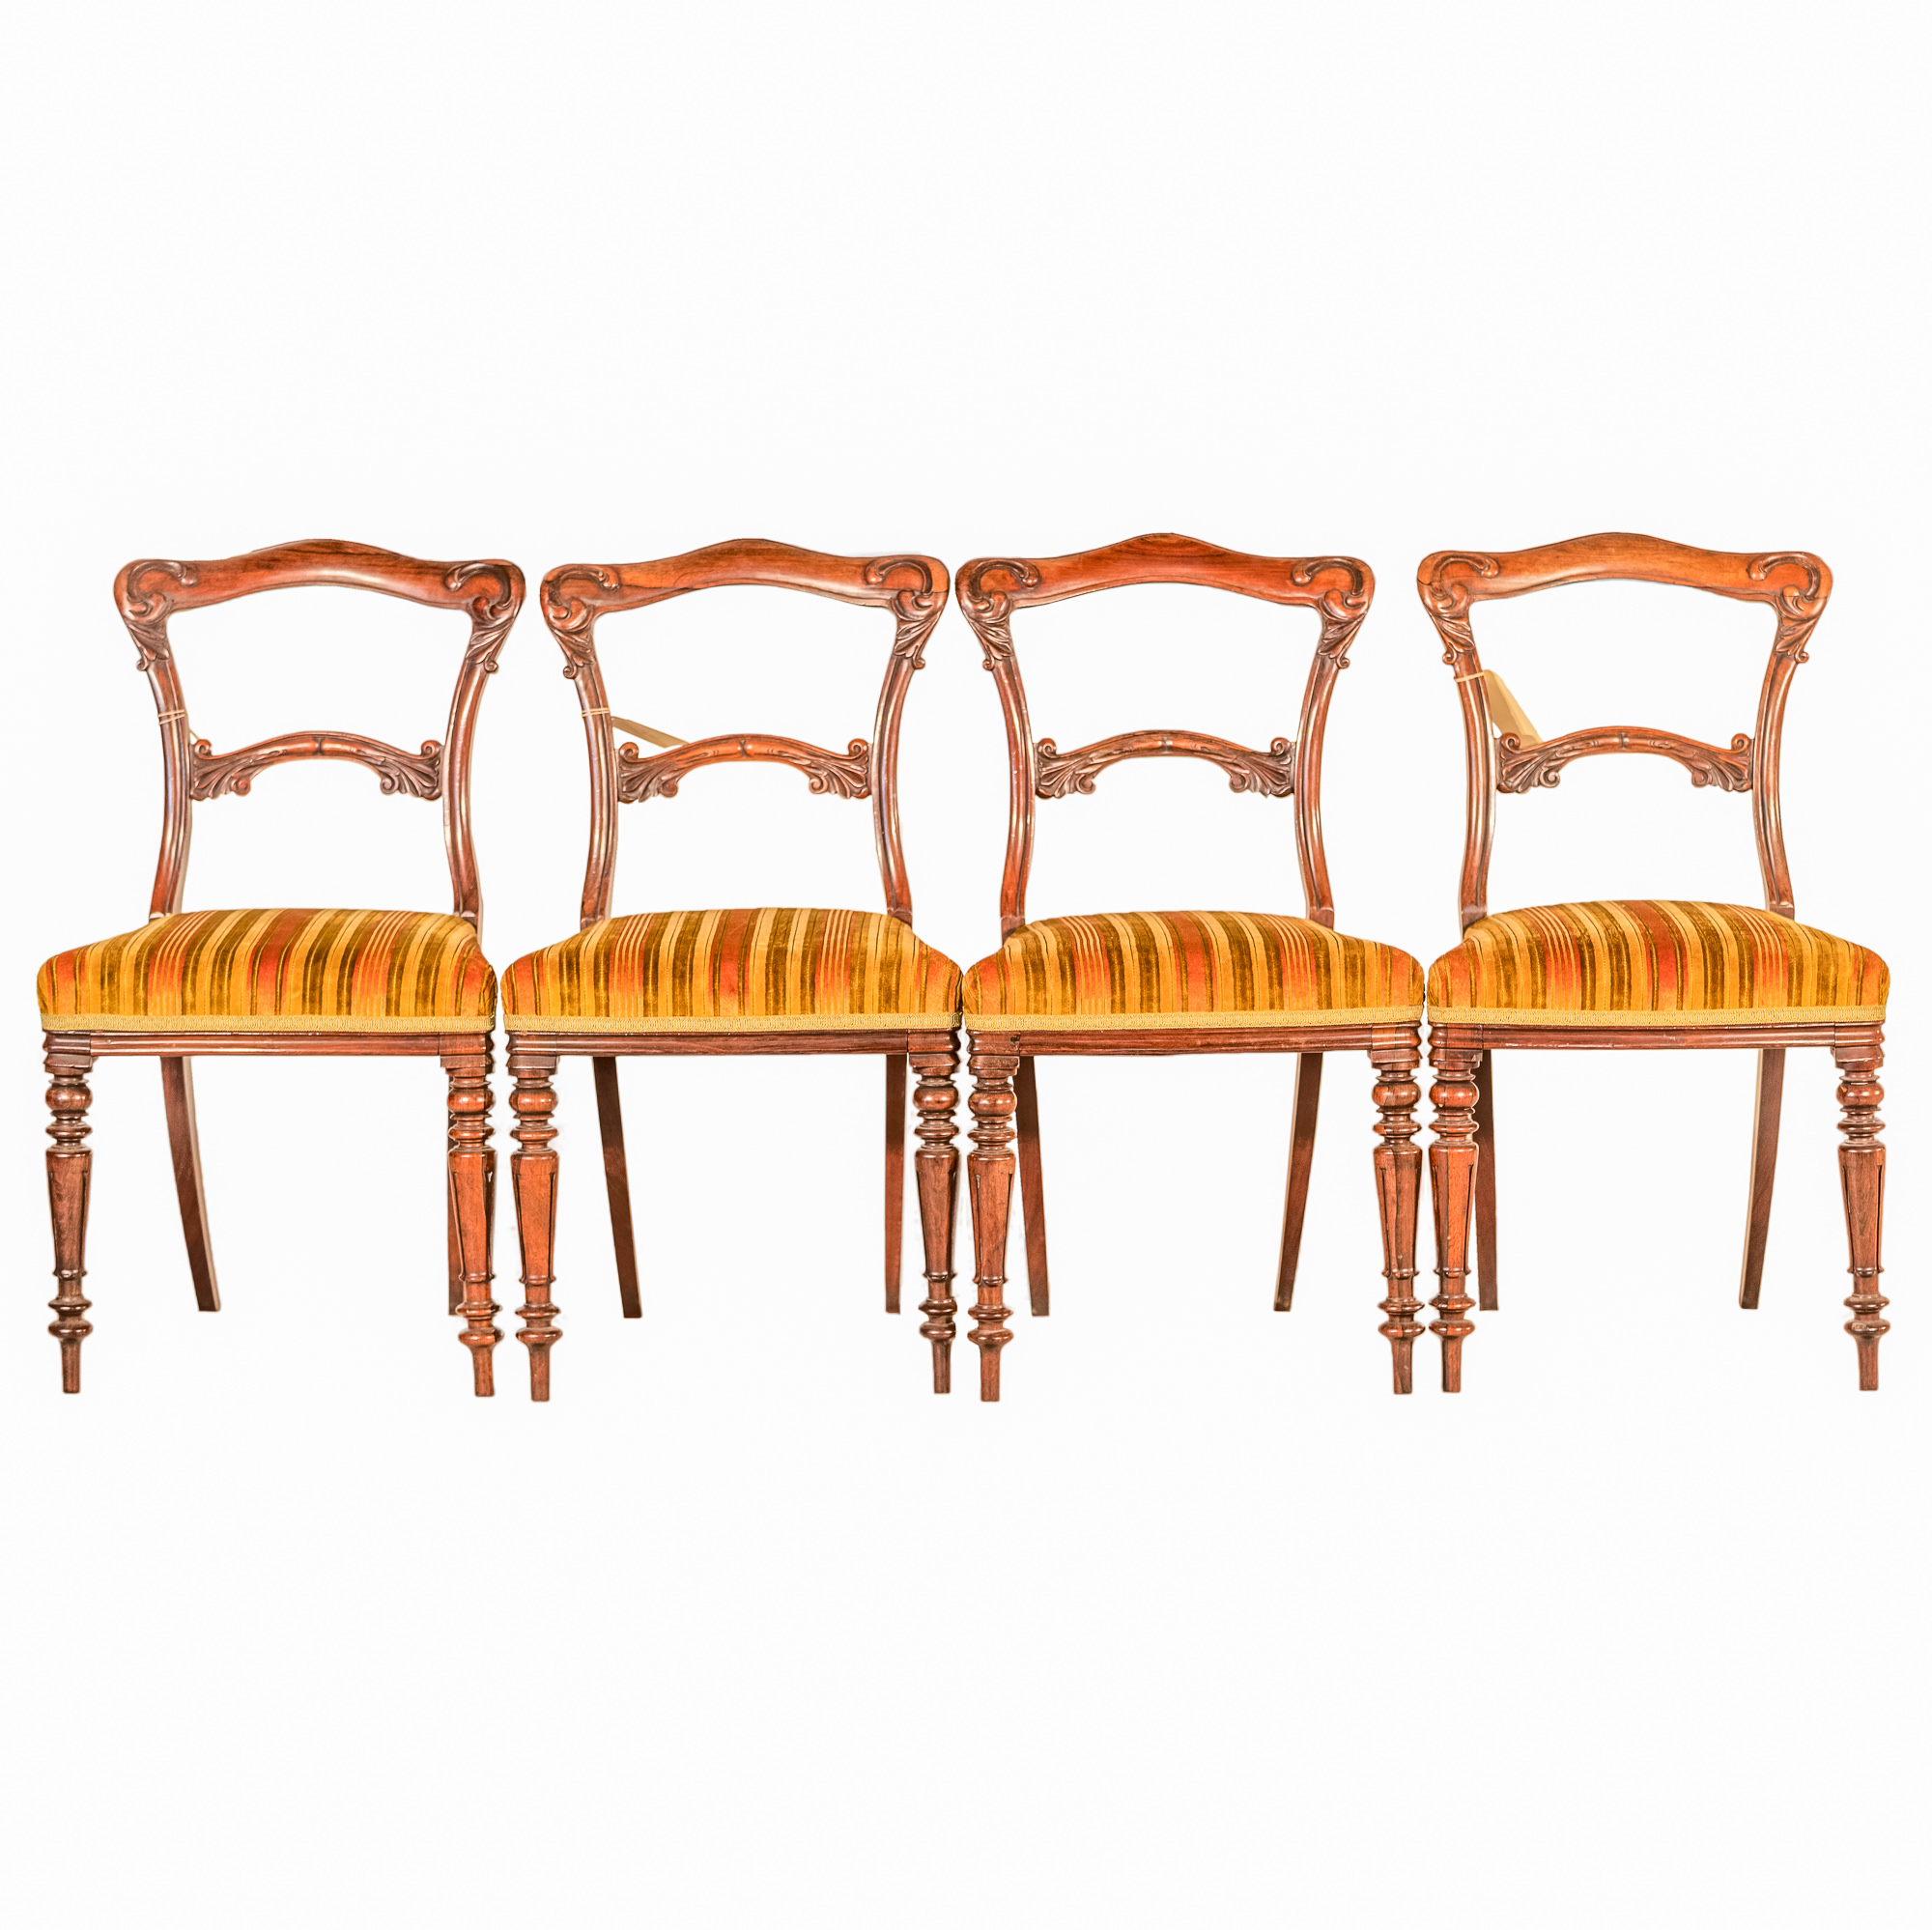 'Four Early Victorian Rosewood Dining Chairs Upholstered in Striped Velvet Circa 1850'